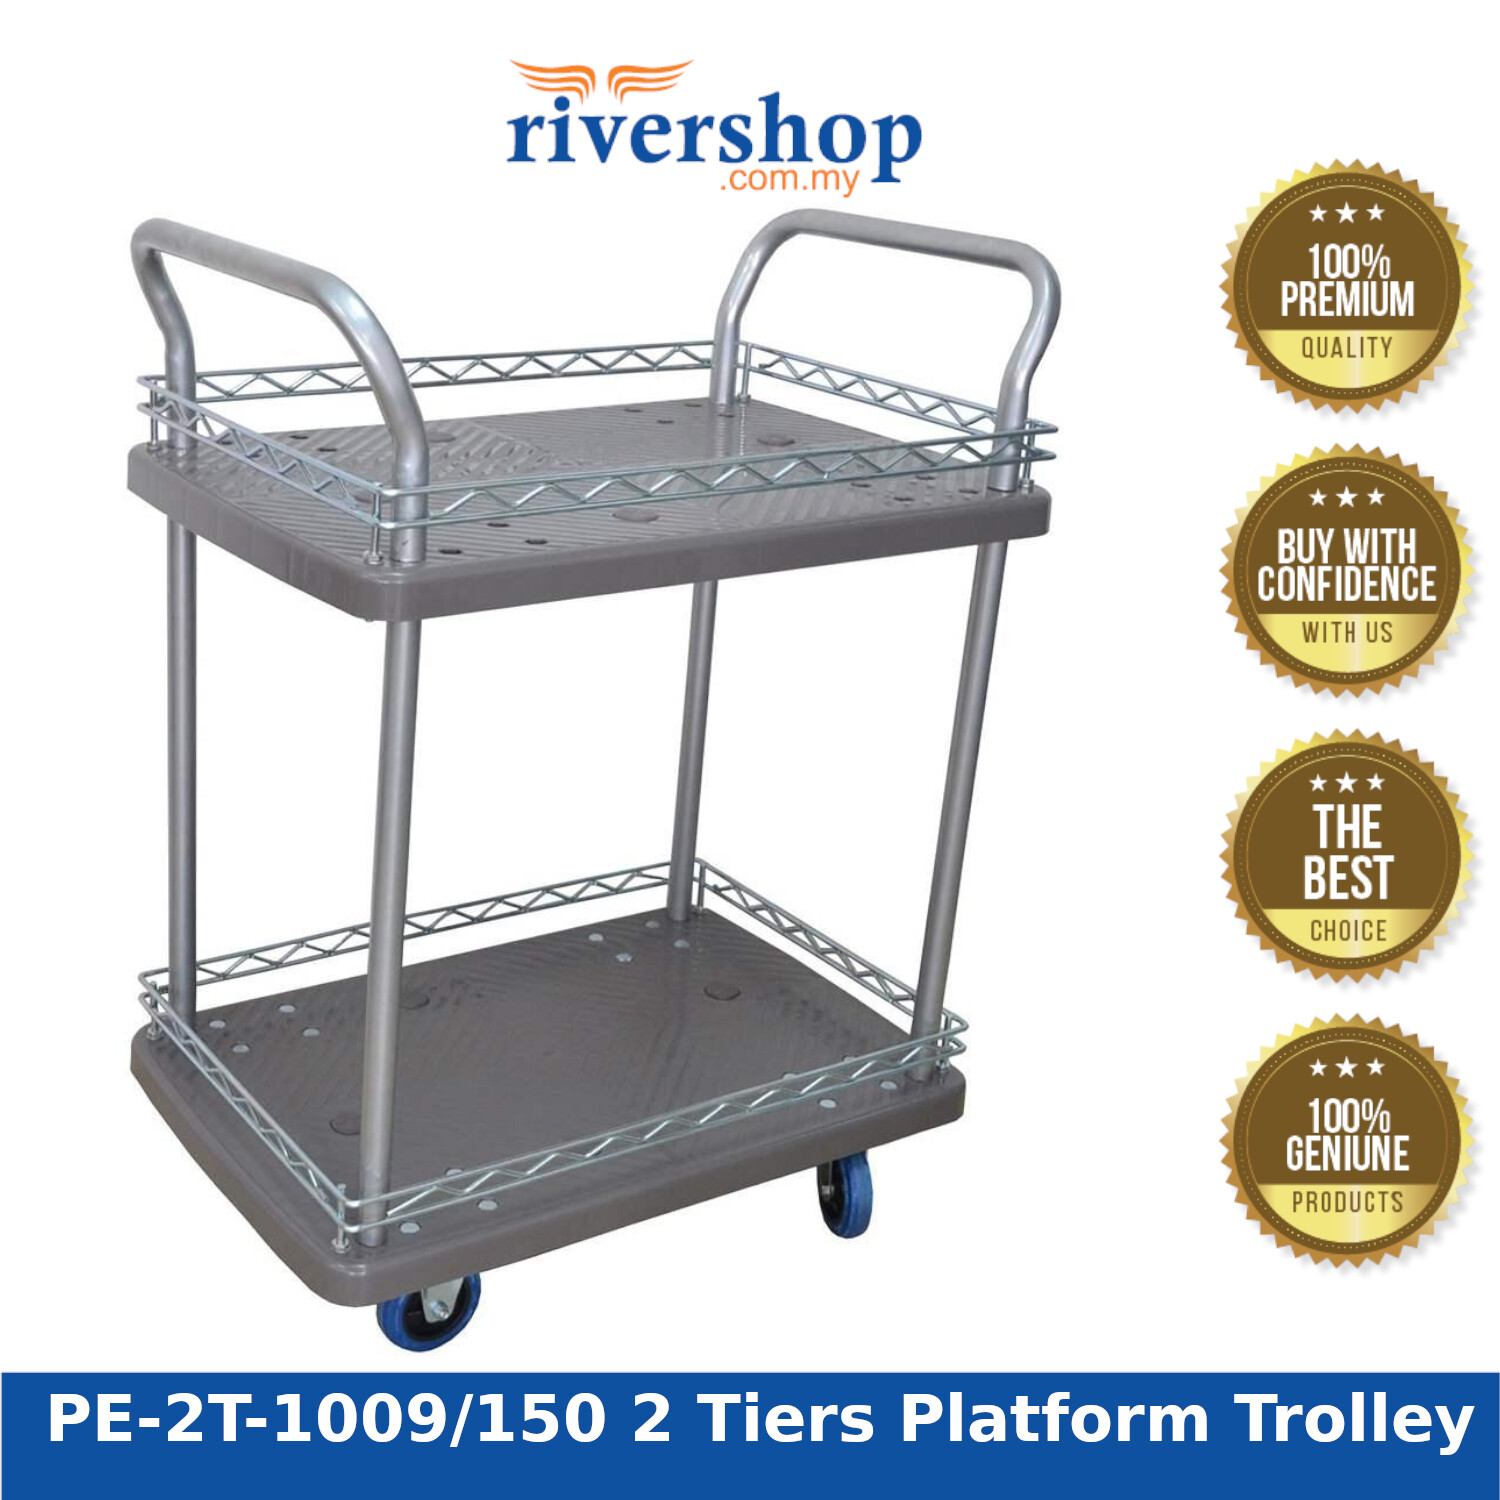 Rivershop Multi-Purpose Double Deck 2 Tiers Platform Trolley PE-2T-1009/150 with Handle for Home Restaurant Commercial